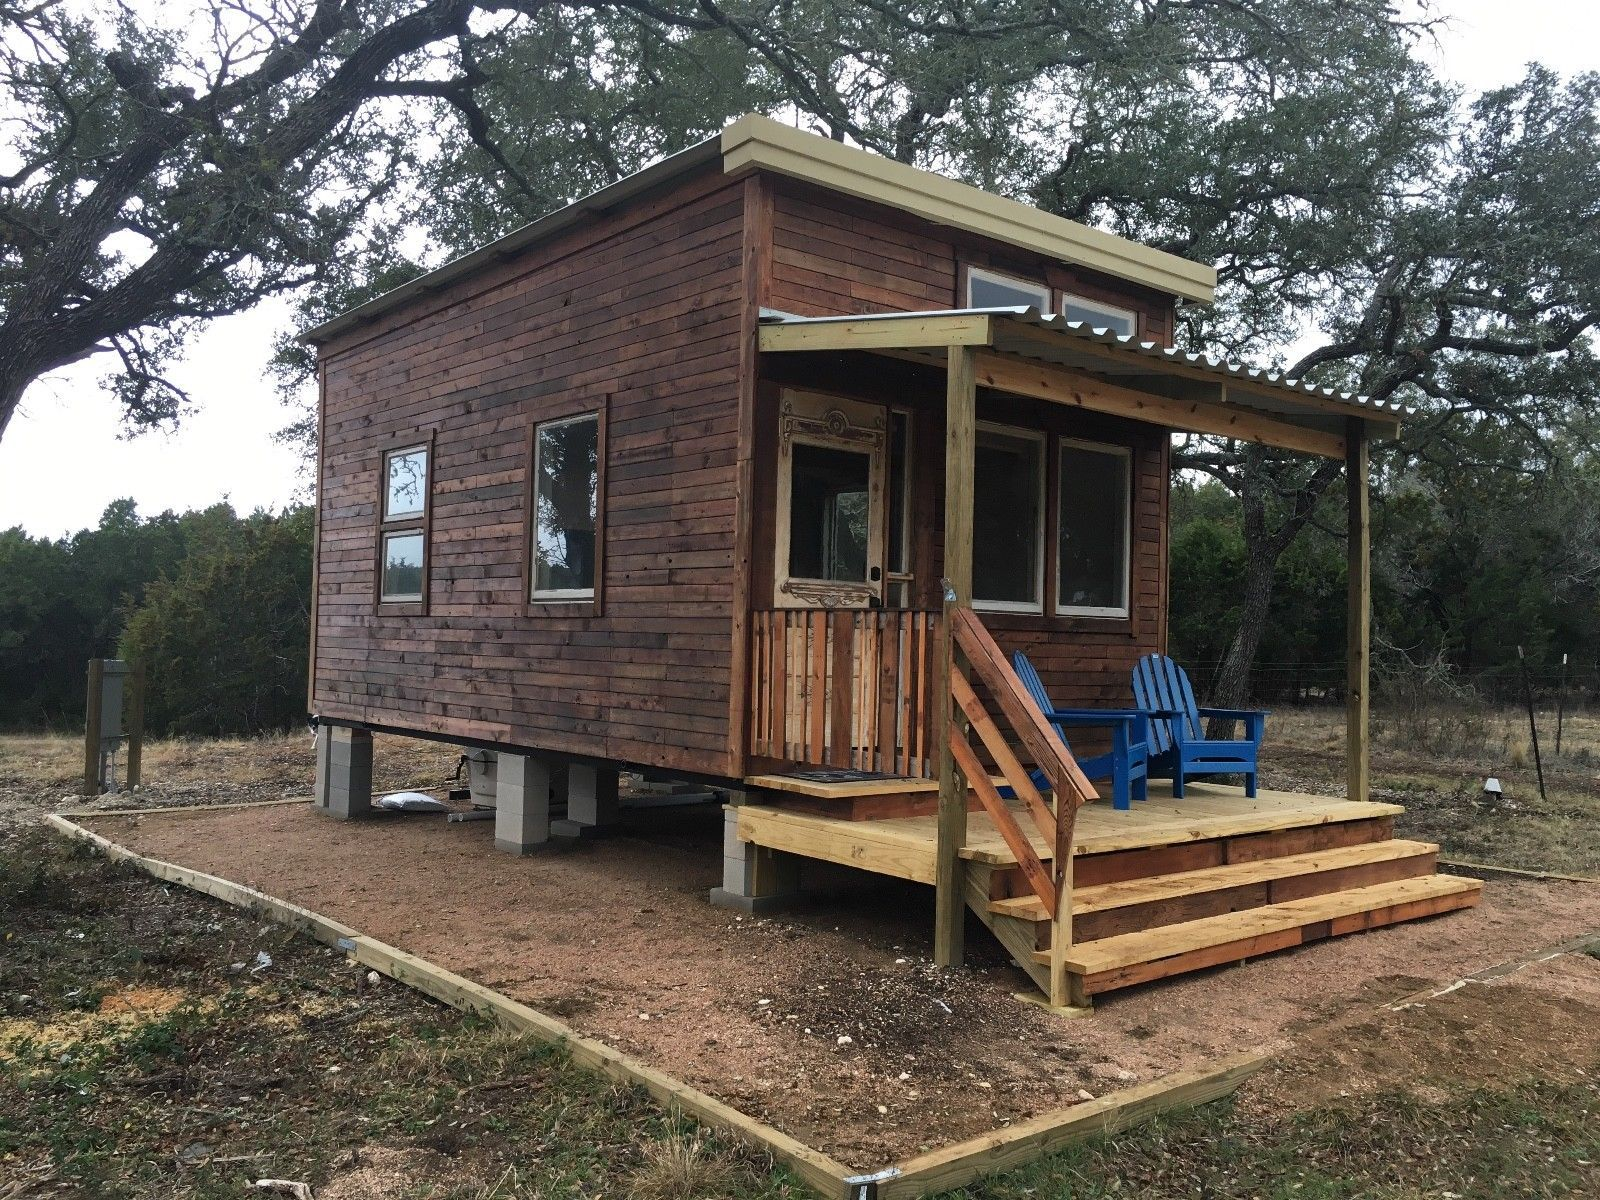 Tiny House 7x7 Easily Movable / Built w Texas Heat in Mind